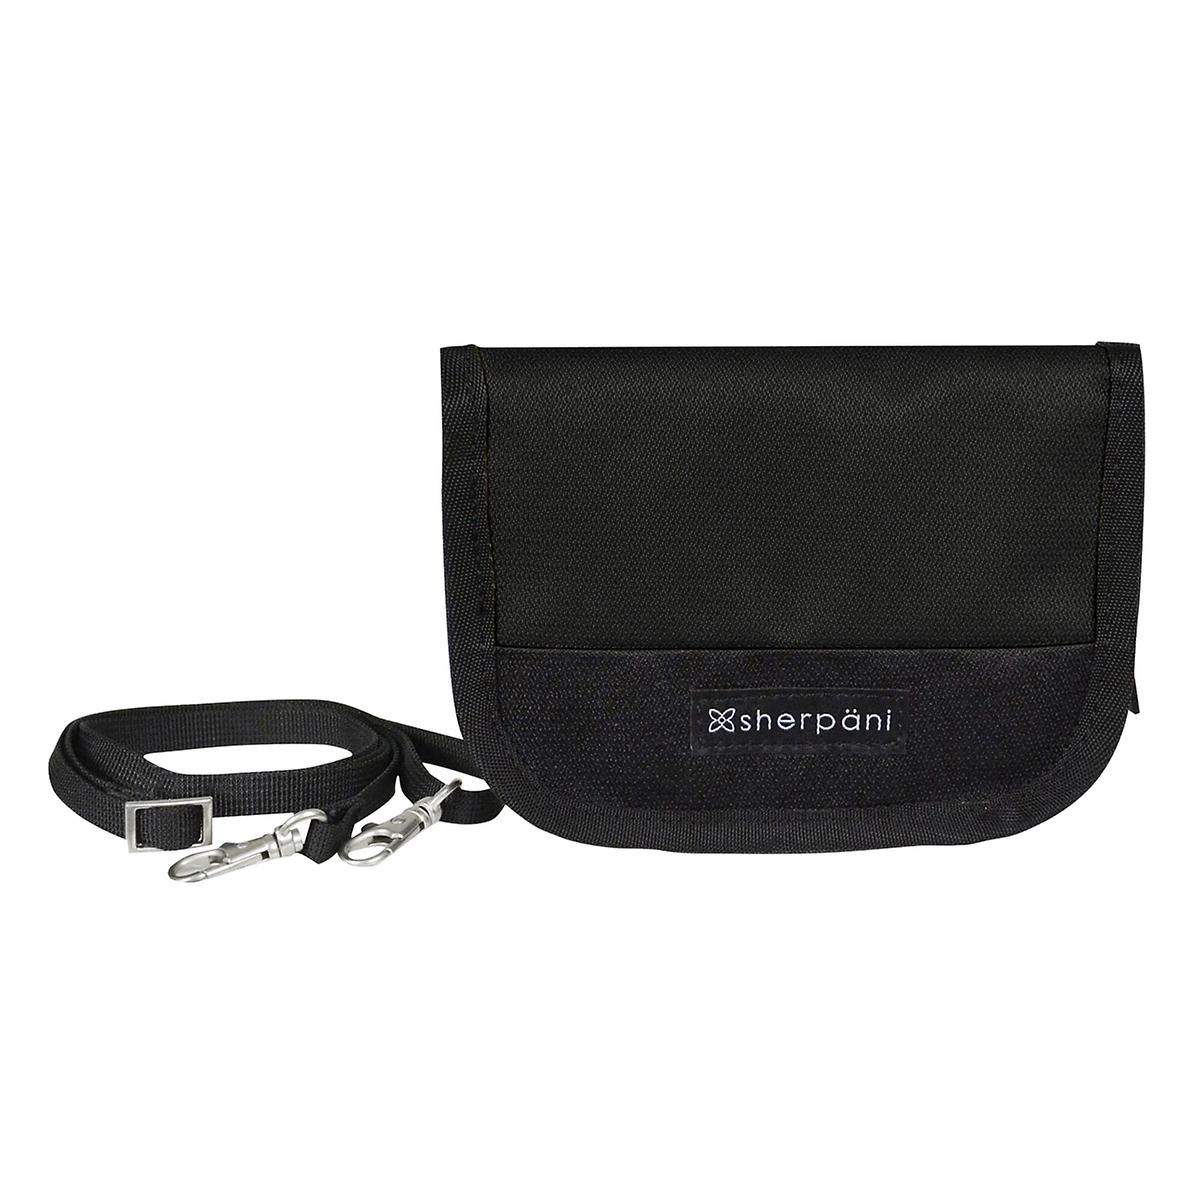 Sherpani Zoe Black Crossbody Wallet